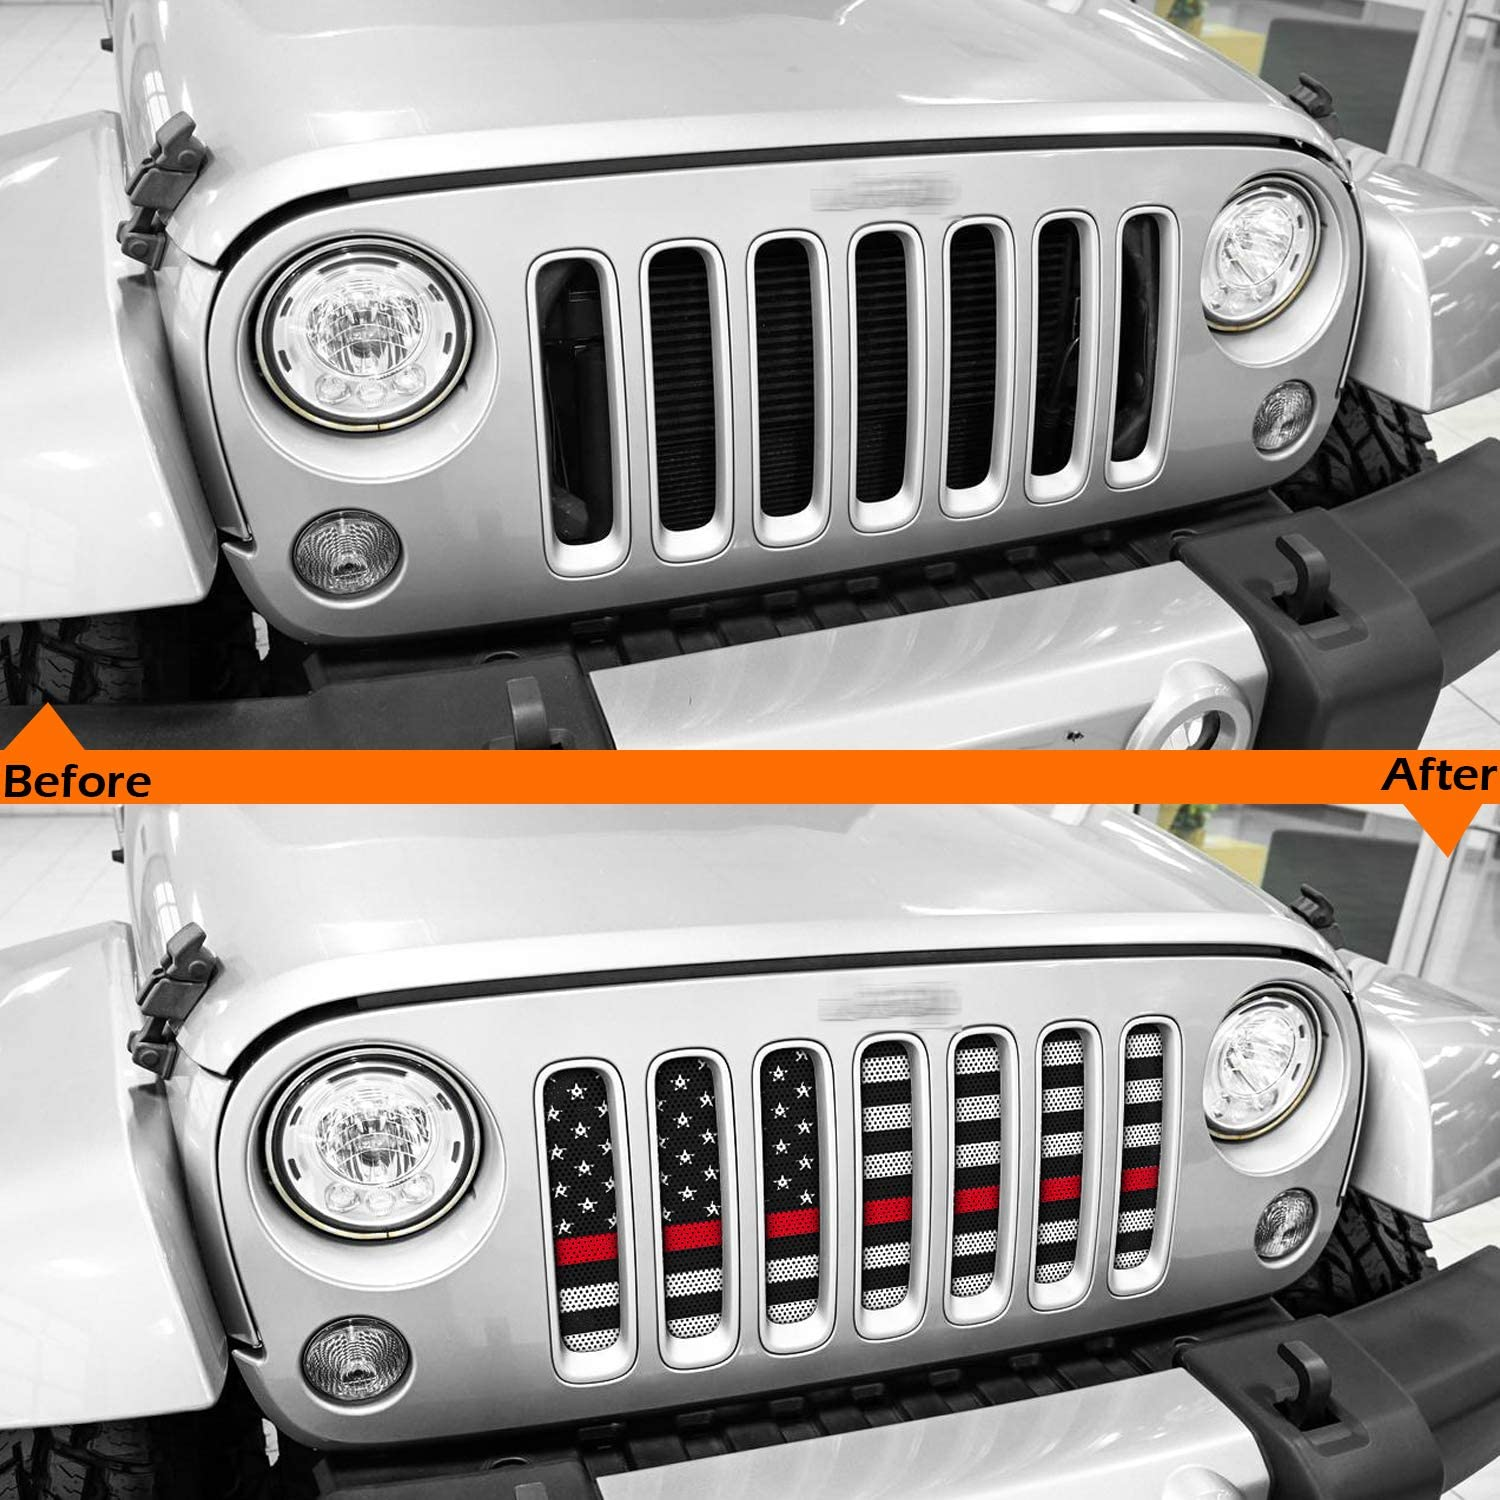 White /& Red Fit for Jeep Wrangler JK /& Unlimited 2007-2018 Yoursme Front Grille Grid Grill Screen Insert American Flag Design Black